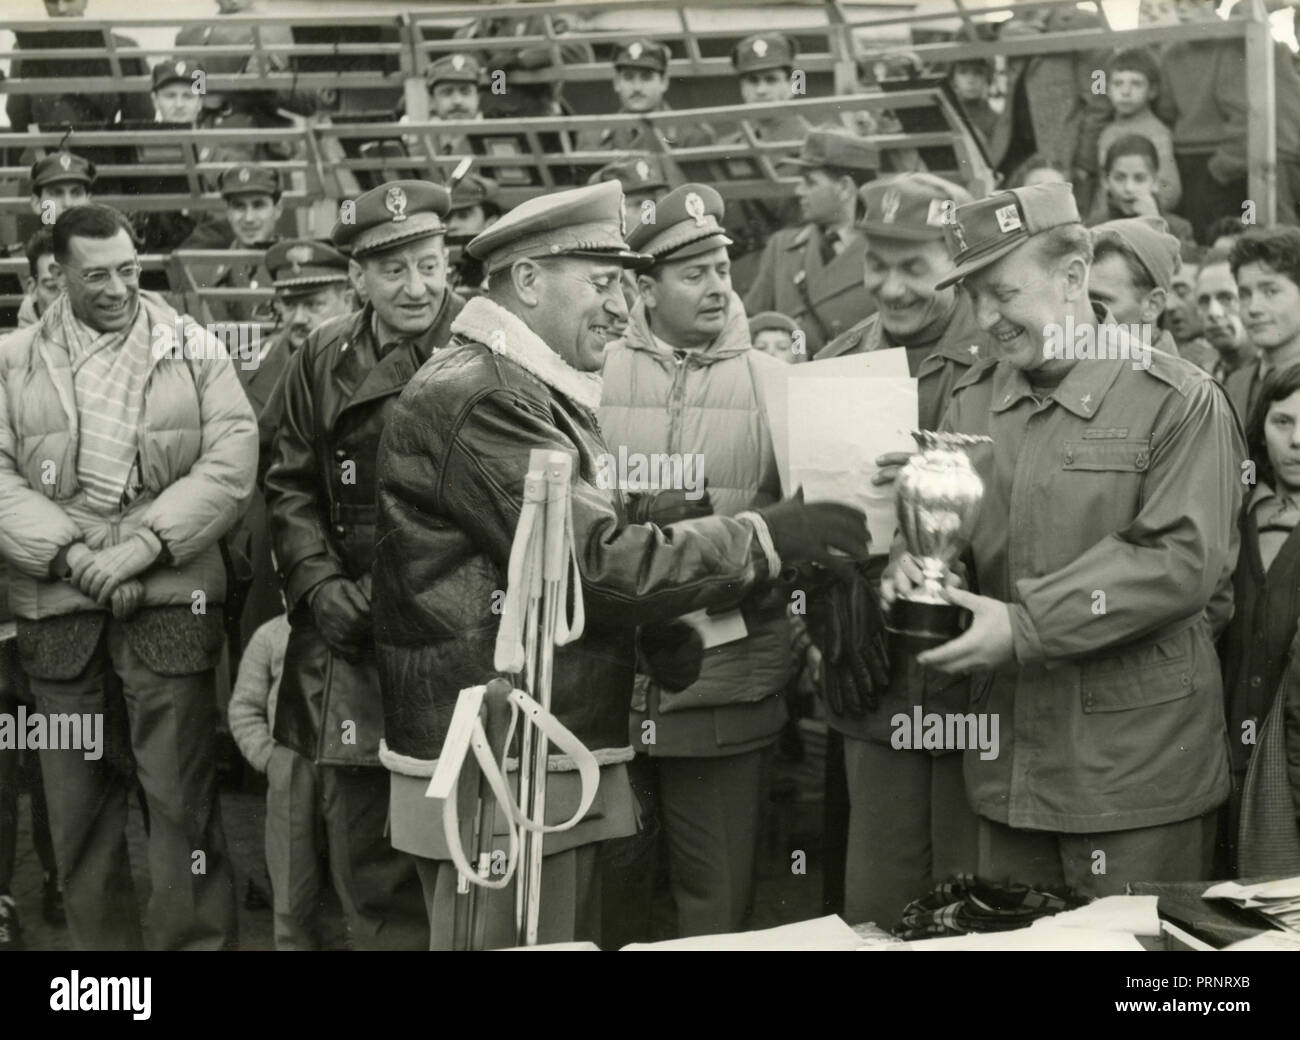 Finance police at a sport competition, Italy 1950s - Stock Image